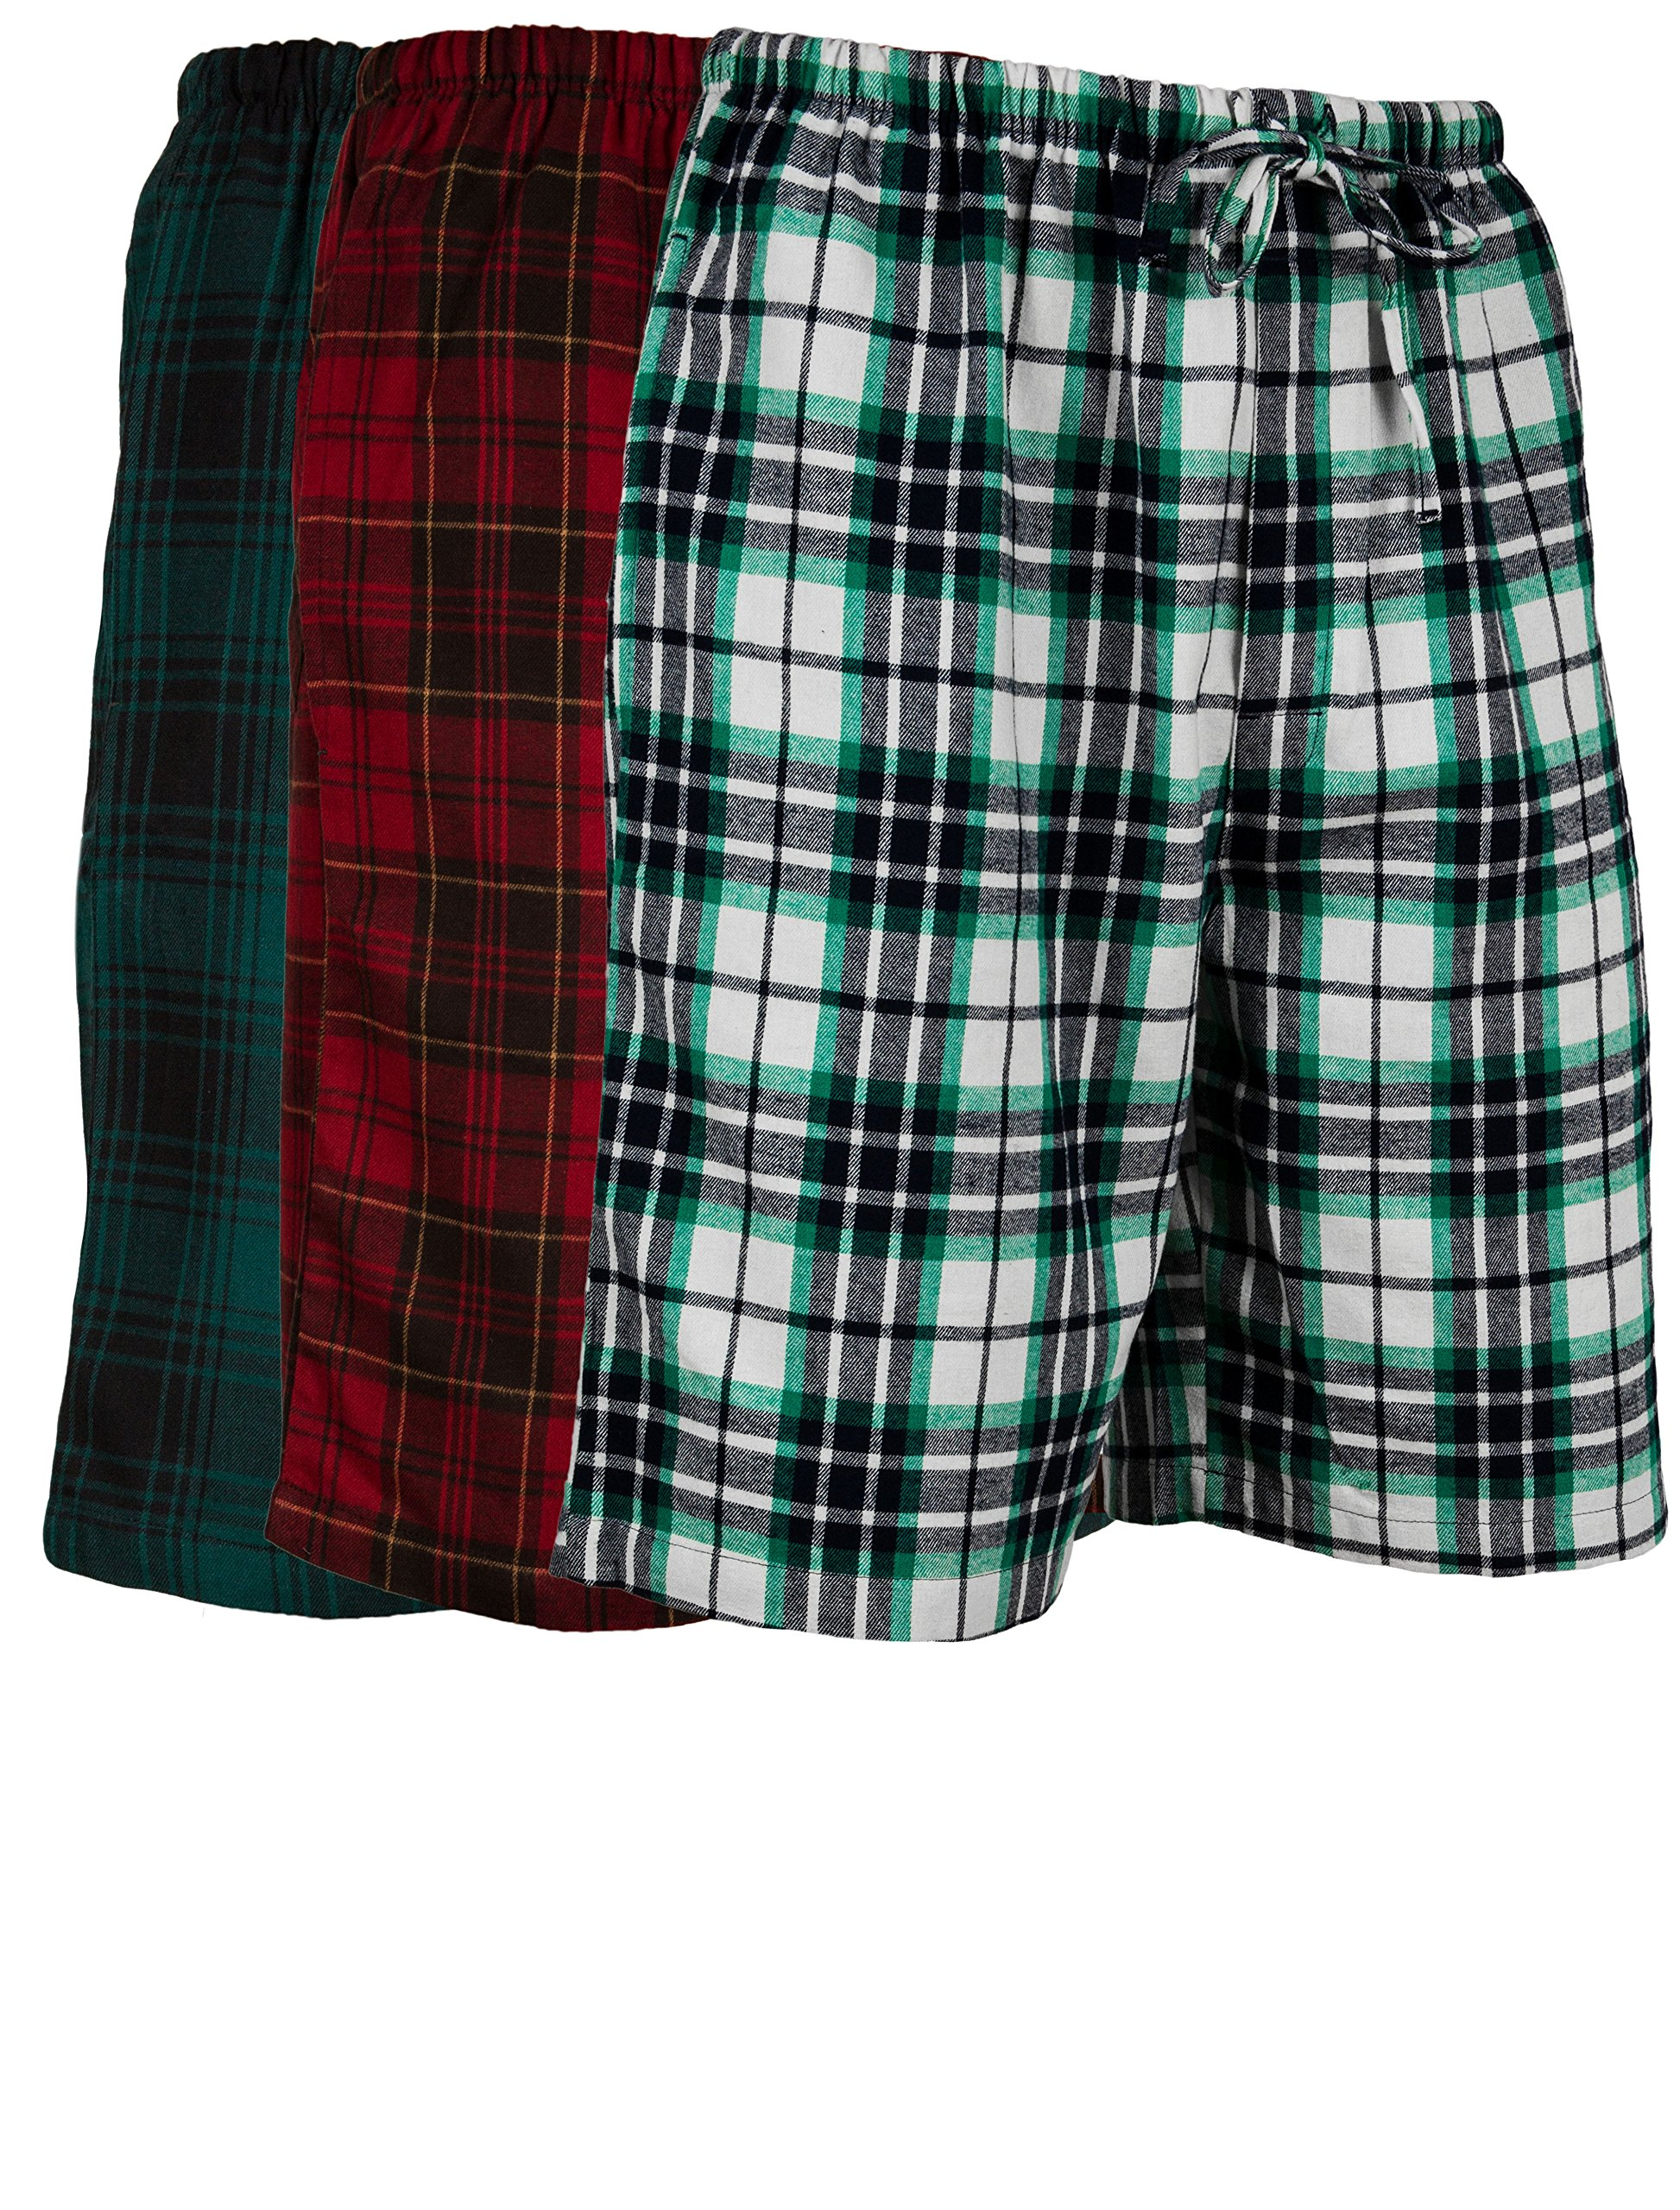 Men's 3 Pack Light Weight Cotton Flannel Soft Fleece Brush Woven Pajama/Lounge Sleep Shorts (3 Pack - Assorted Classics Plaids, Small)